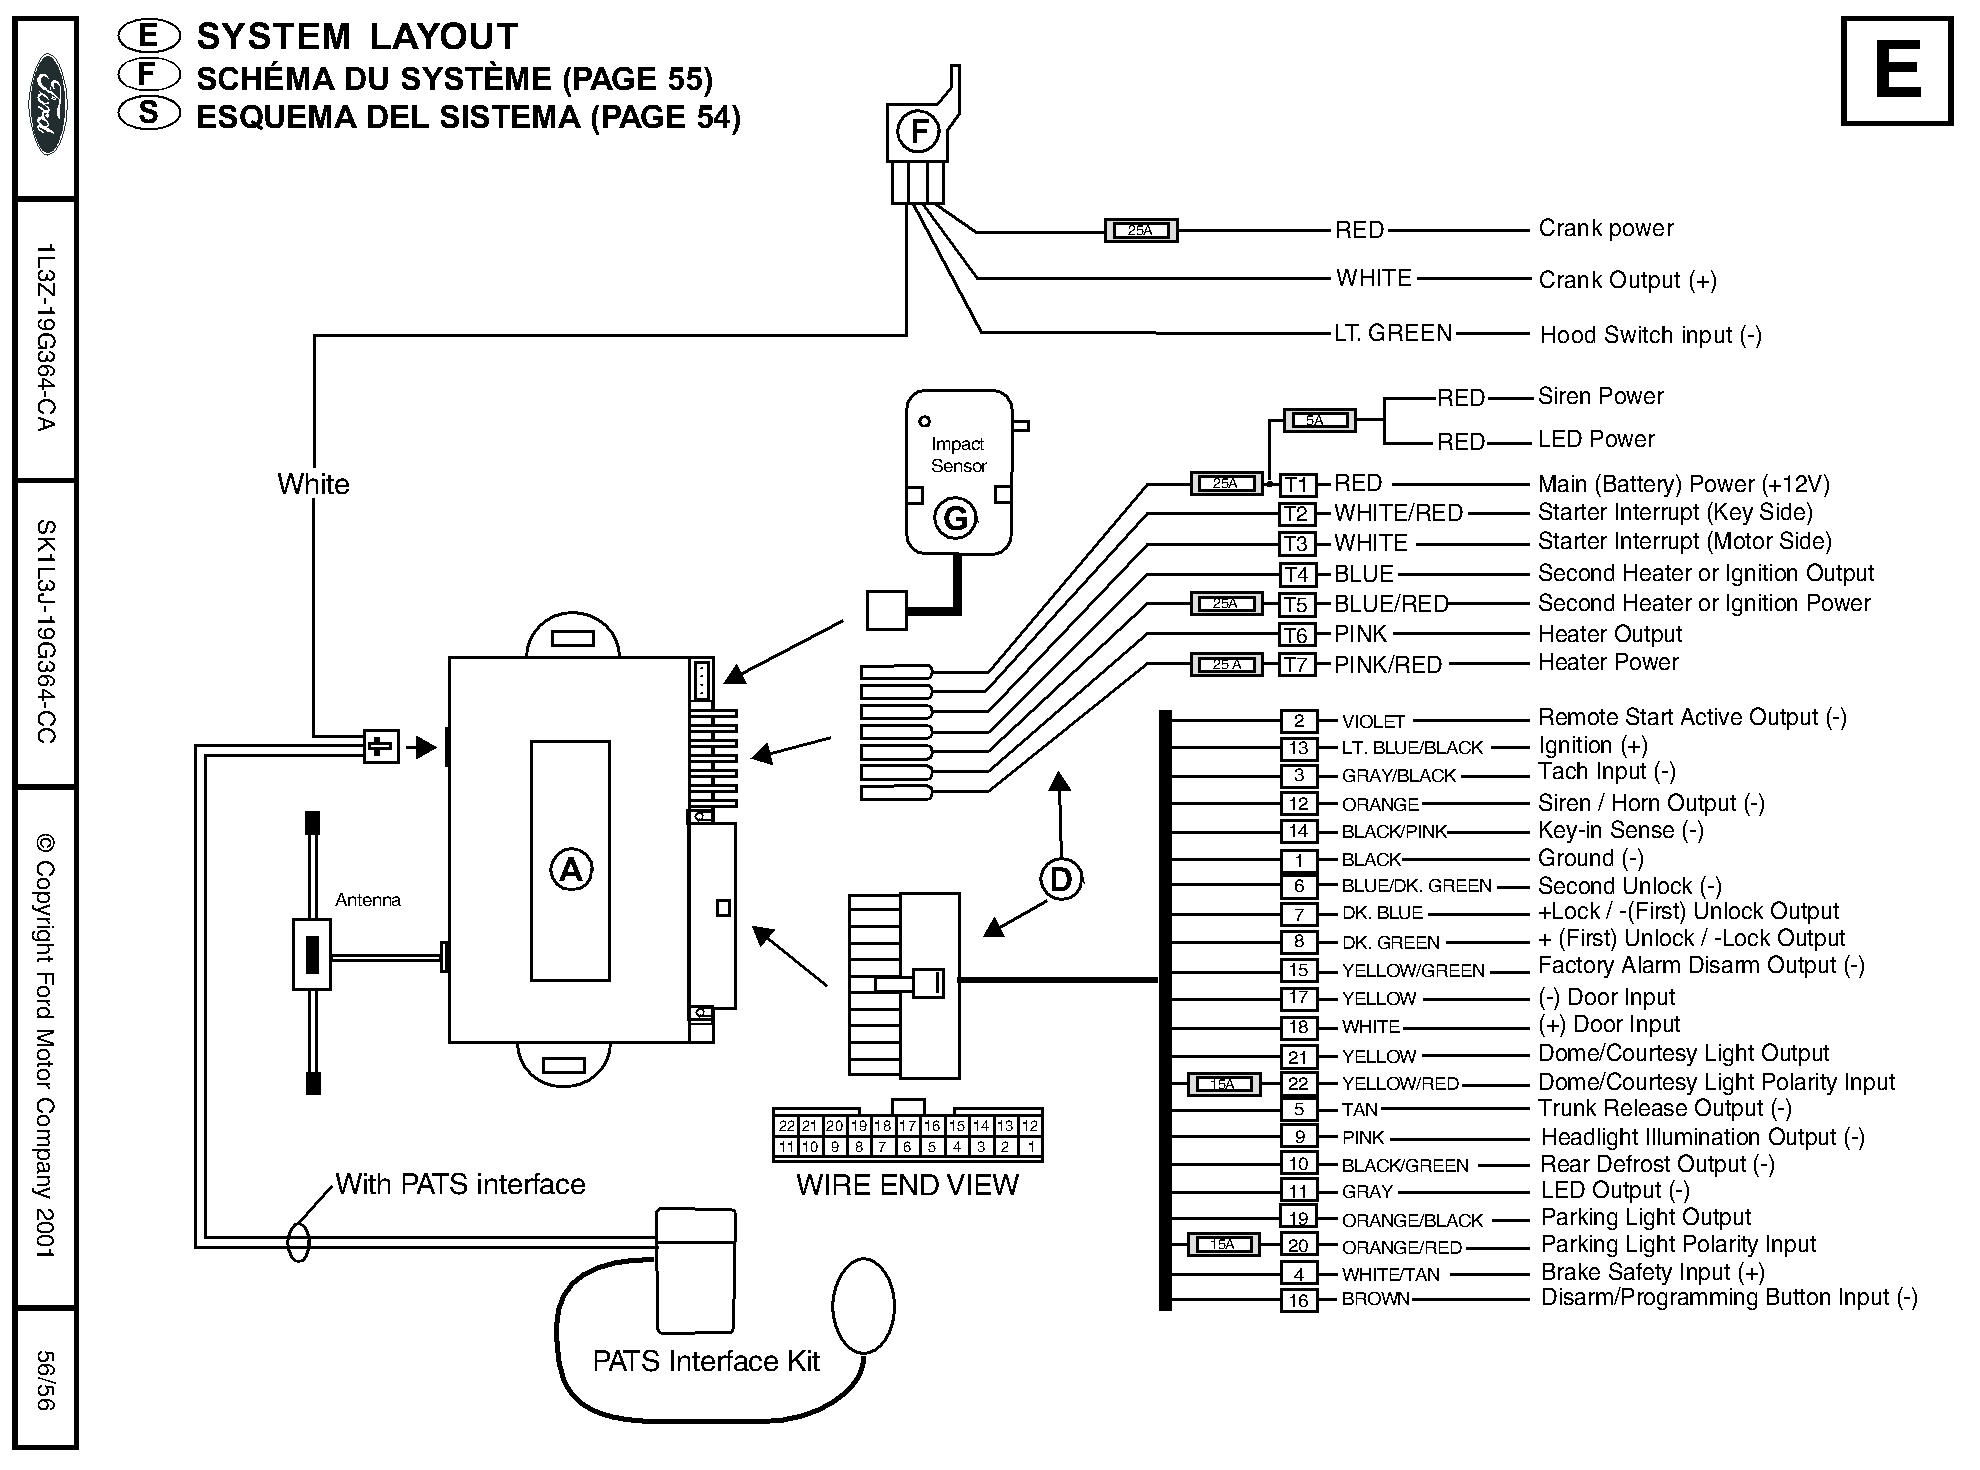 Gm 3 Wire Alternator Wiring Diagram moreover 92 F150 Door Panels as well 71so28 in addition Neutral Safety Switch Wiring Diagram Chevy additionally 2005 F250 Fuse Box Diagram. on keyless entry wiring diagrams